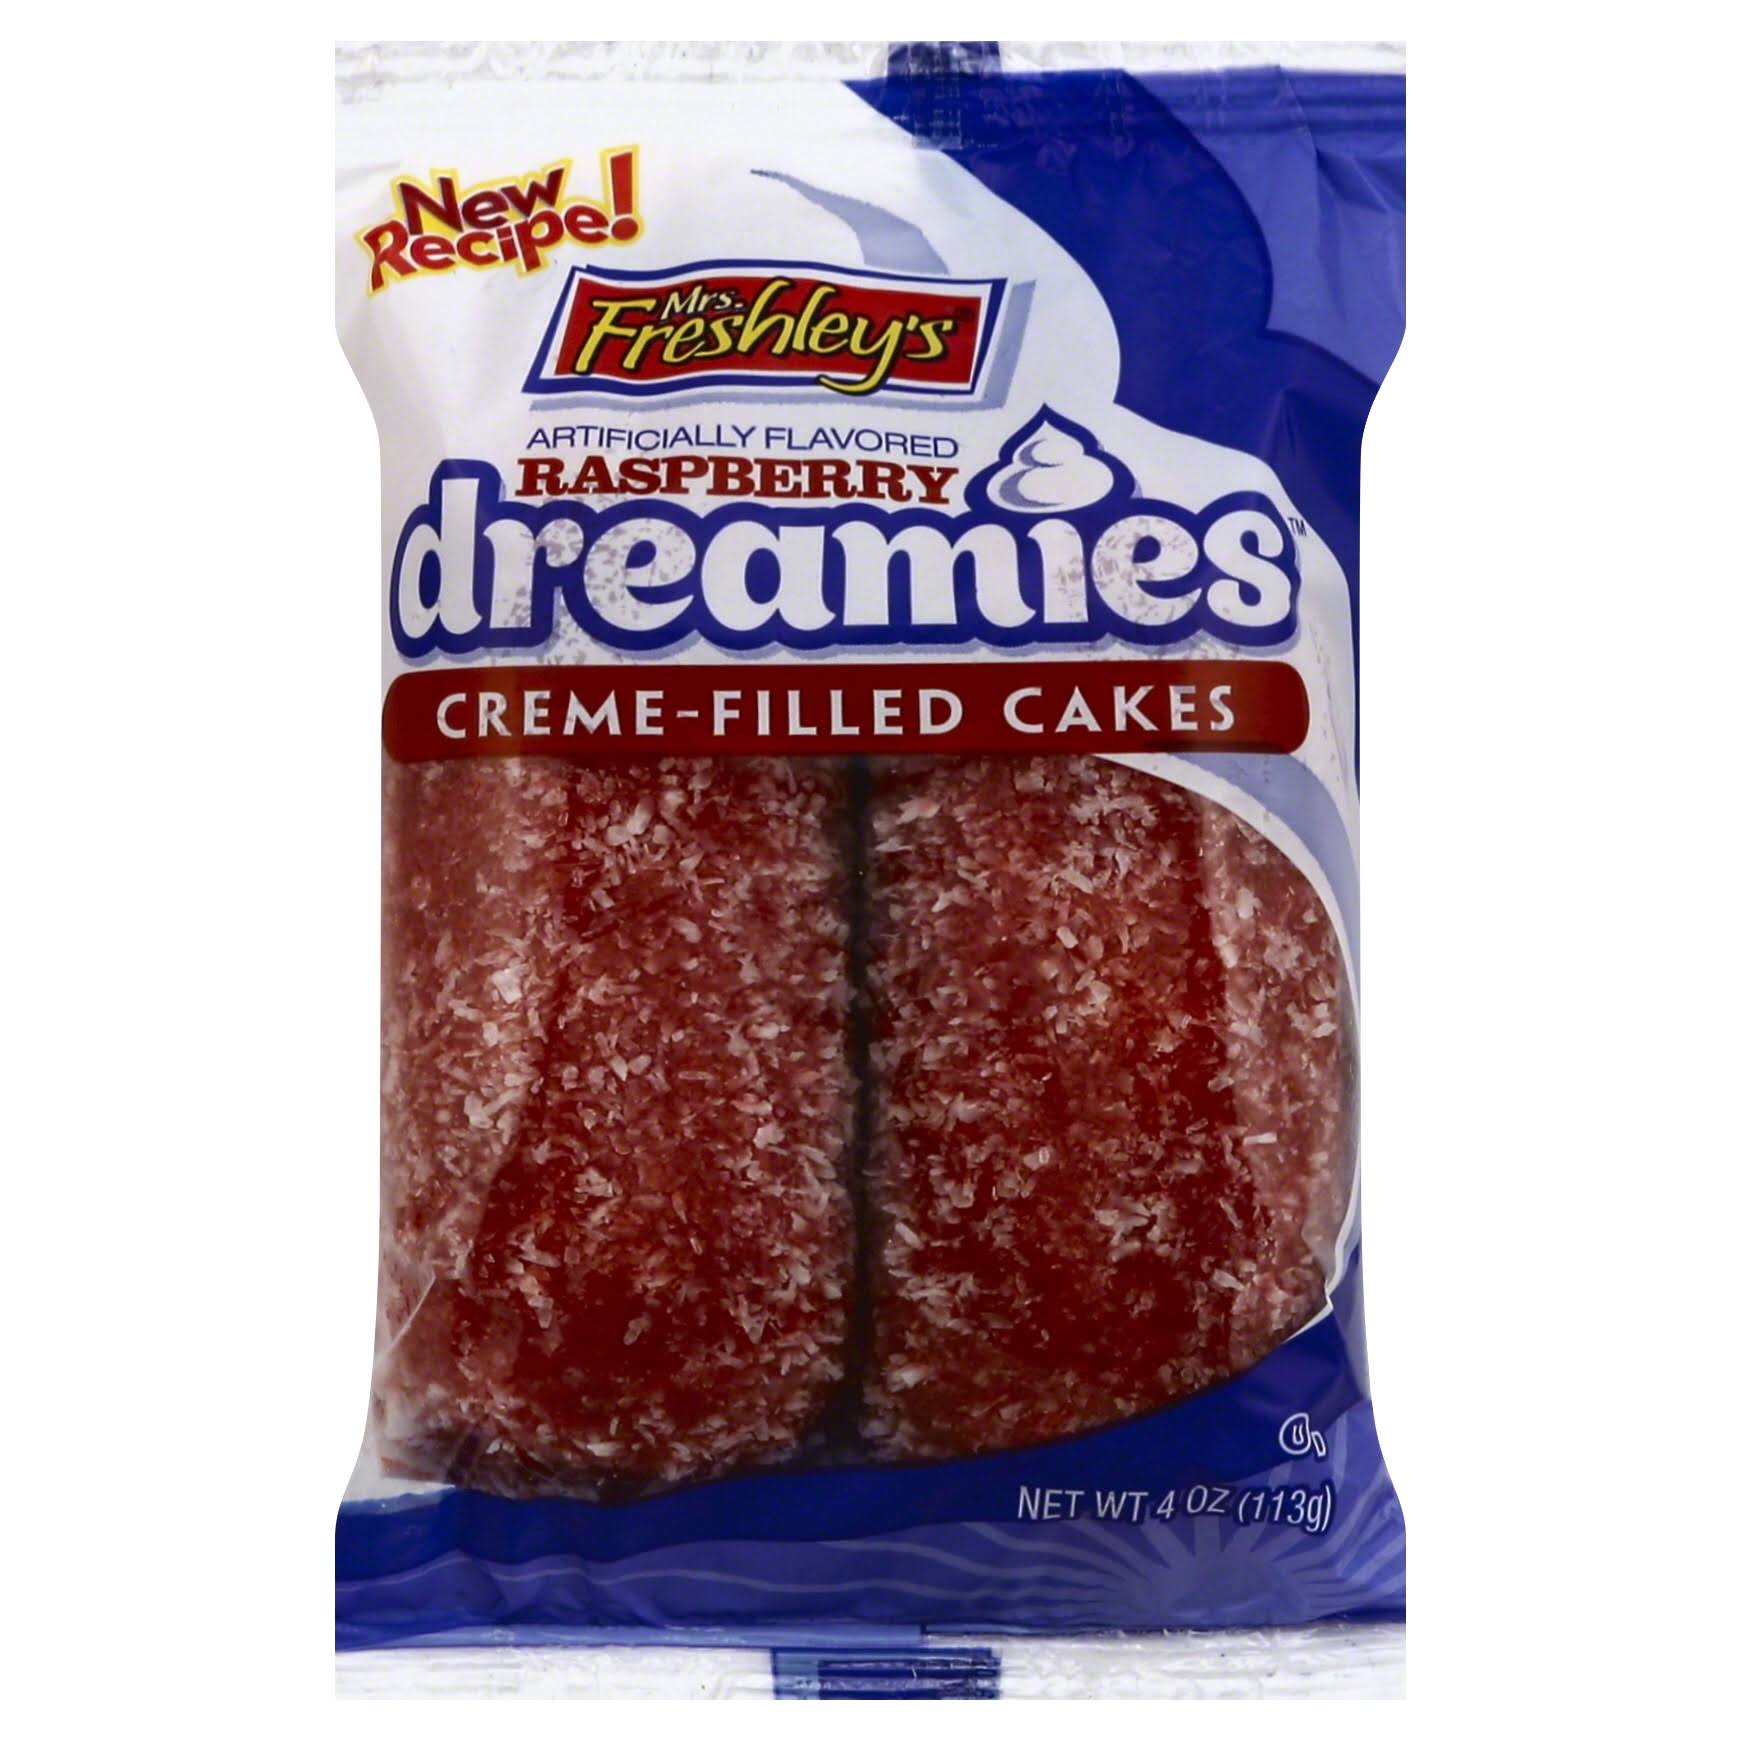 Mrs. Freshley's Dreamies Cream-Filled Cakes - Raspberry. 113g